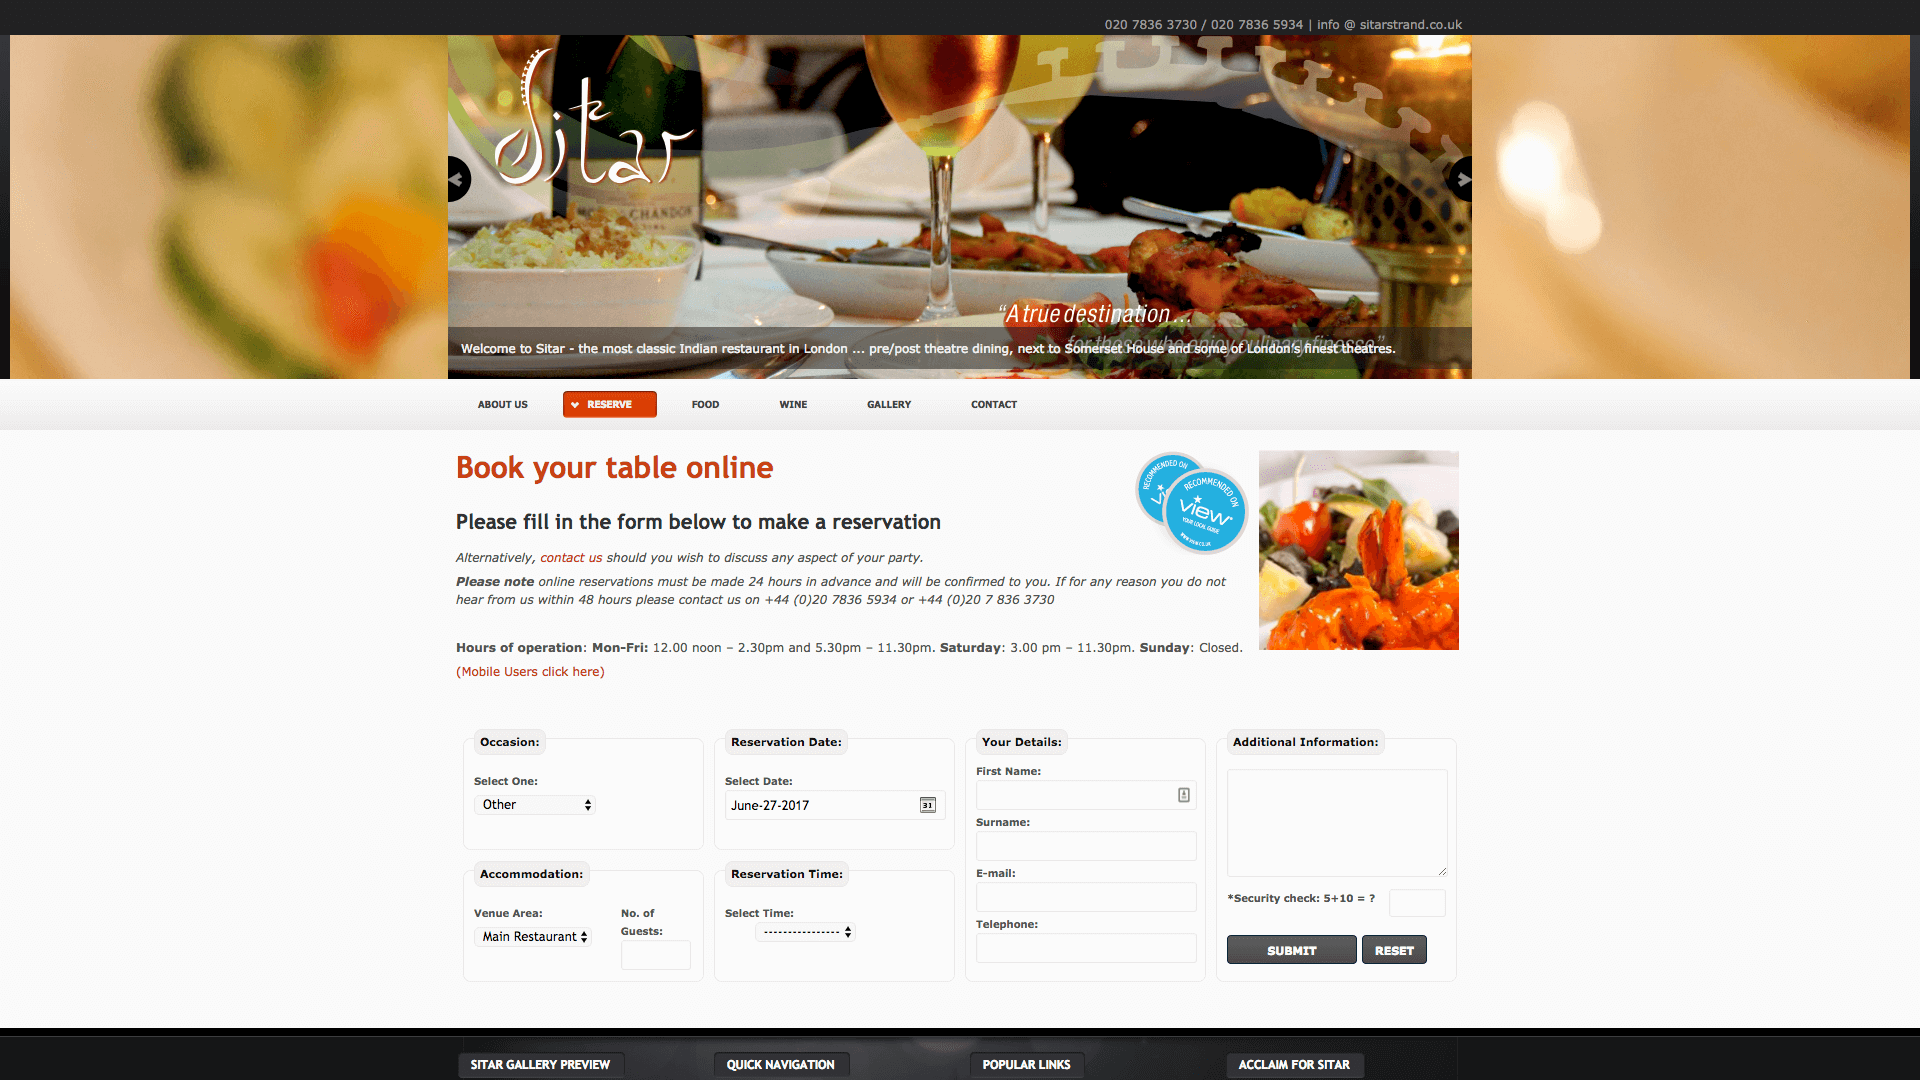 Shapur before 3 - Website design for Indian Restaurant